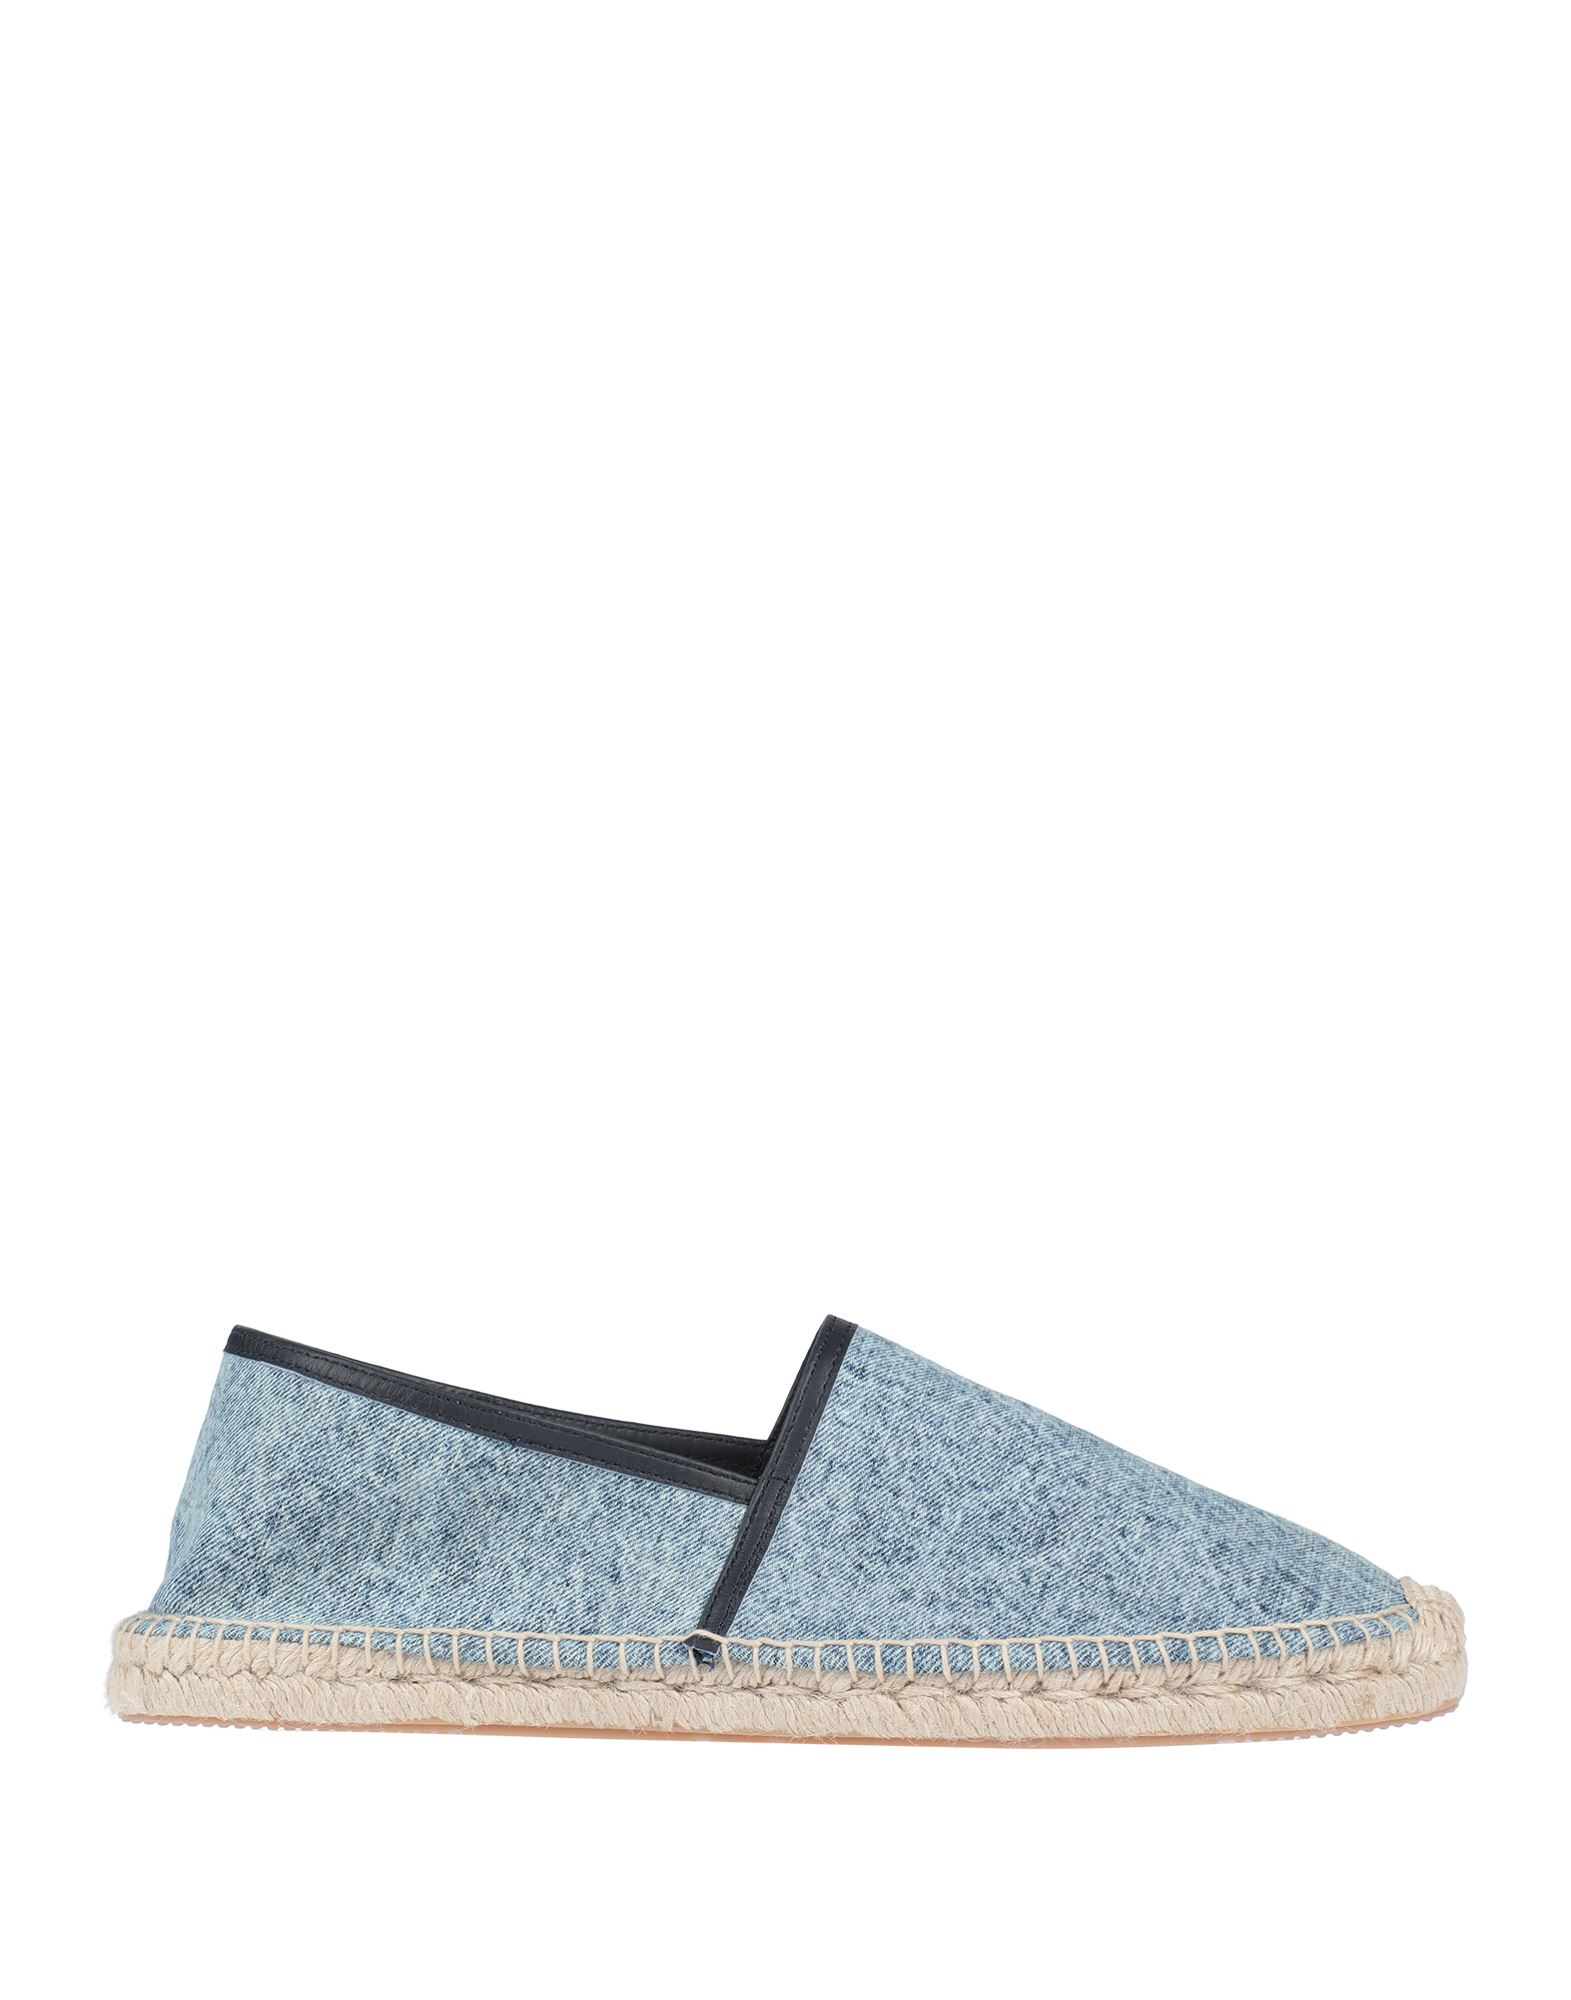 ISABEL MARANT Espadrilles. denim, no appliqués, solid color, narrow toeline, flat, leather lining, rubber cleated sole, contains non-textile parts of animal origin. 100% Cotton